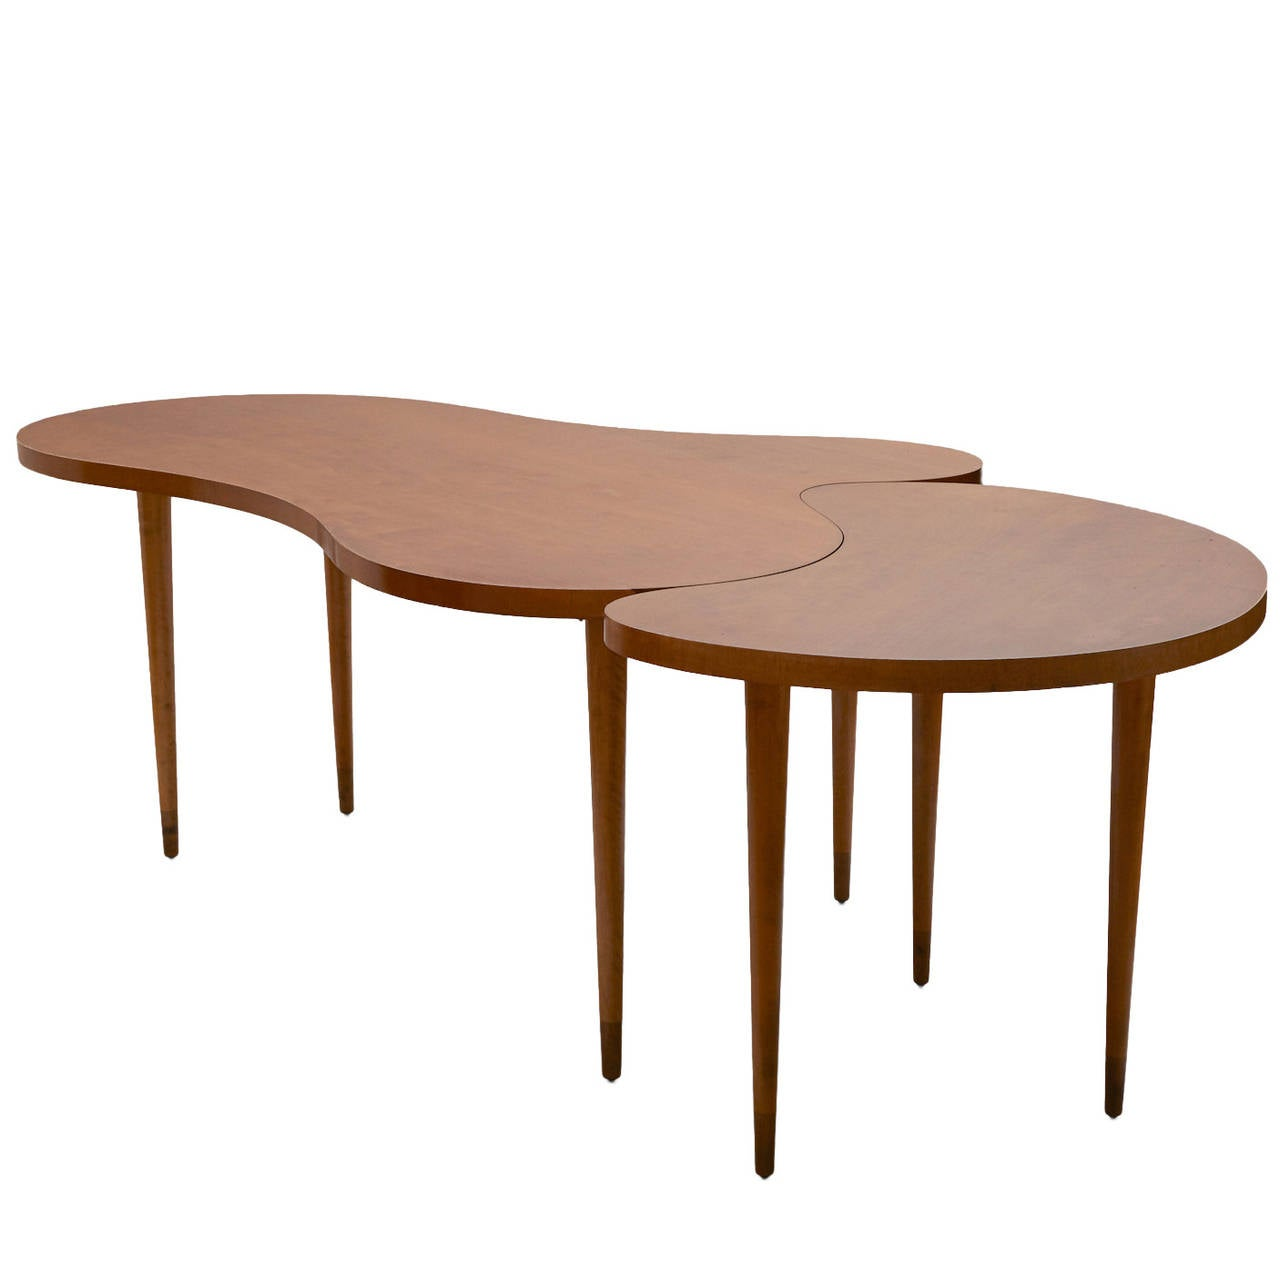 edmond spence two part maple dining table at 1stdibs. Black Bedroom Furniture Sets. Home Design Ideas